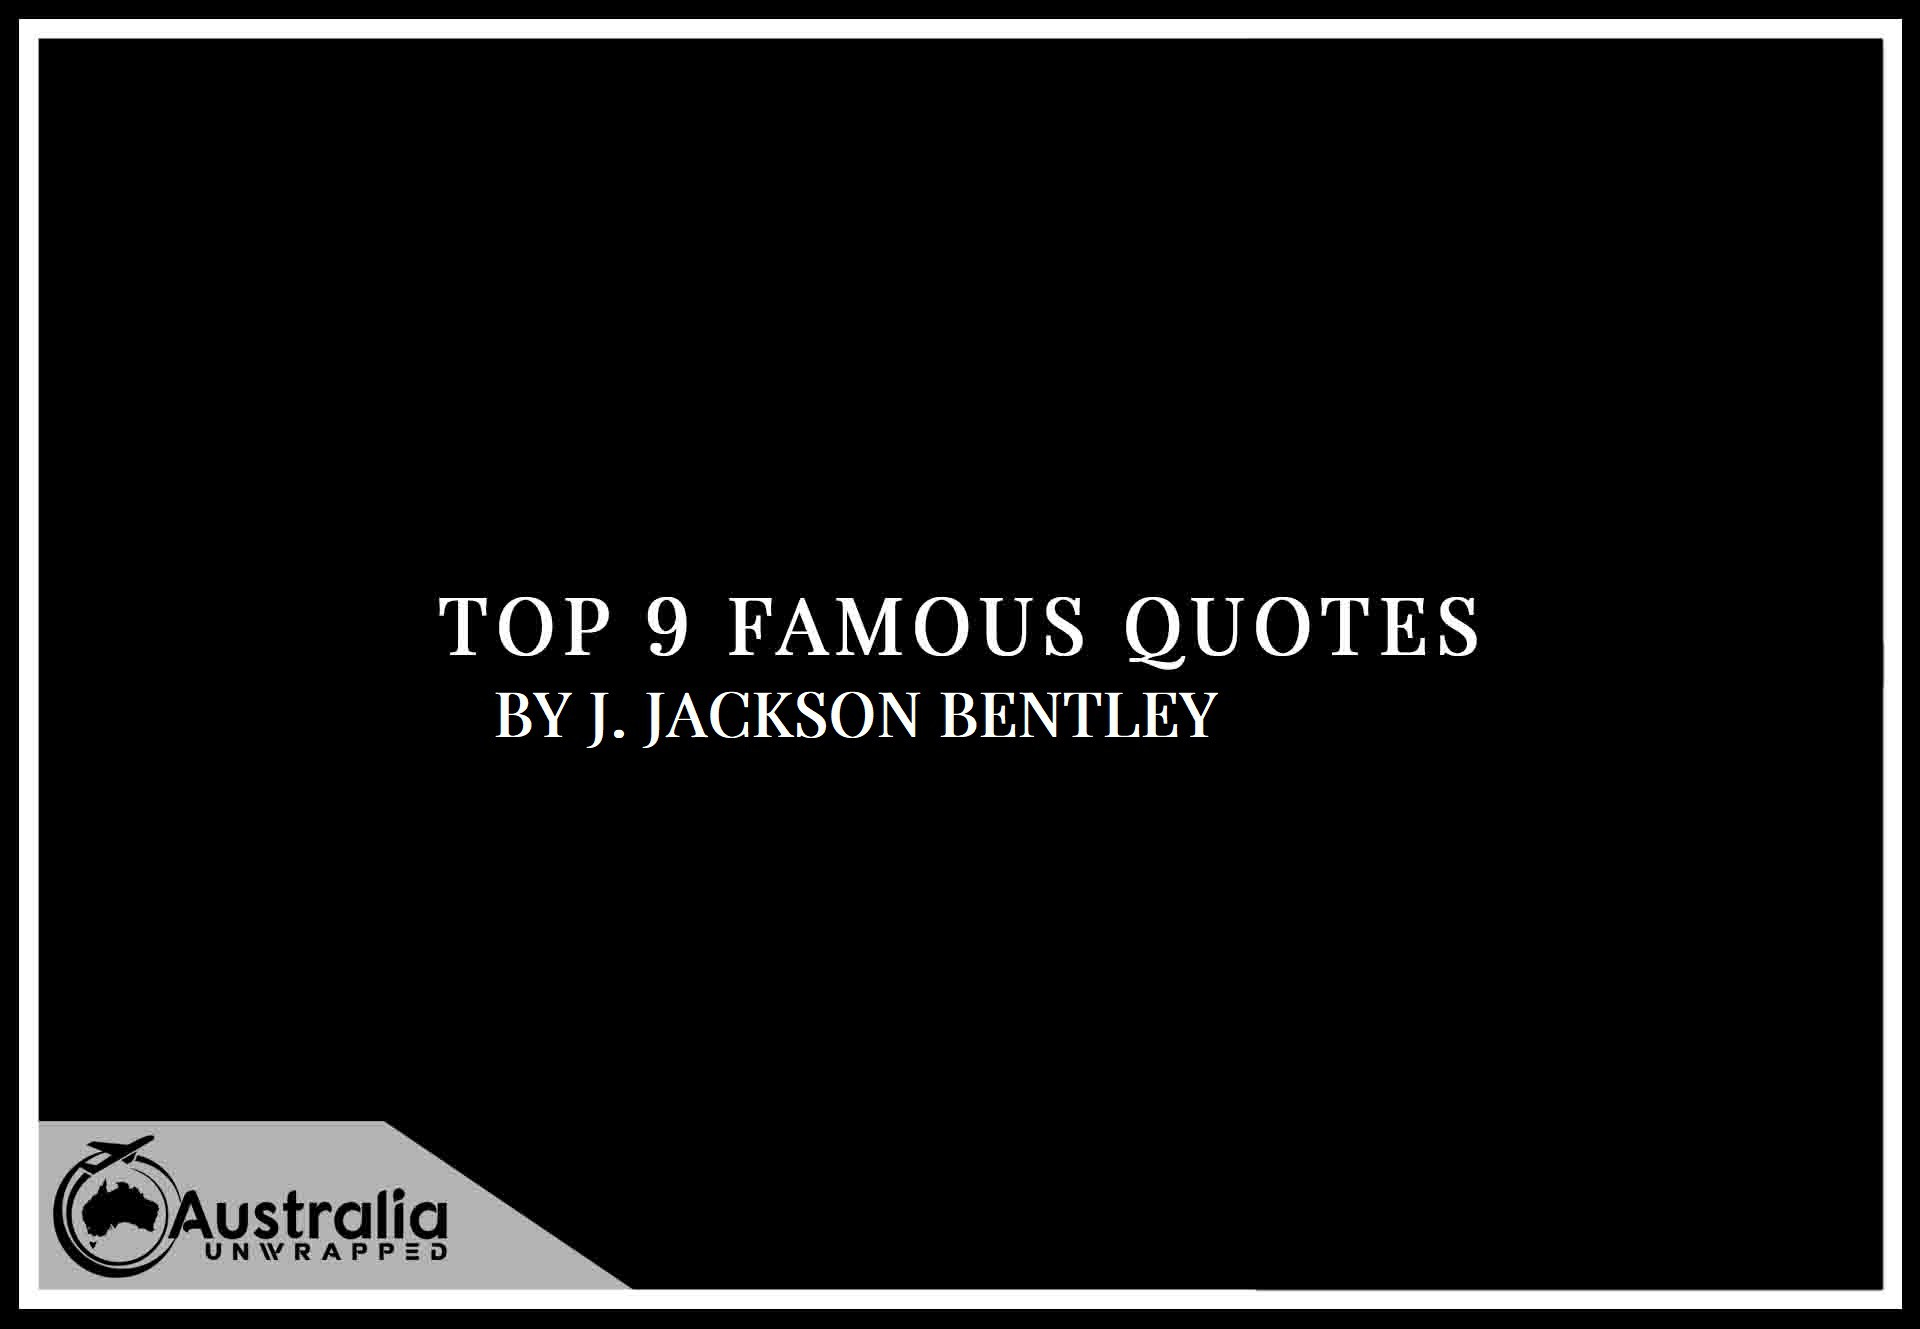 Top 9 Famous Quotes by Author J. Jackson Bentley